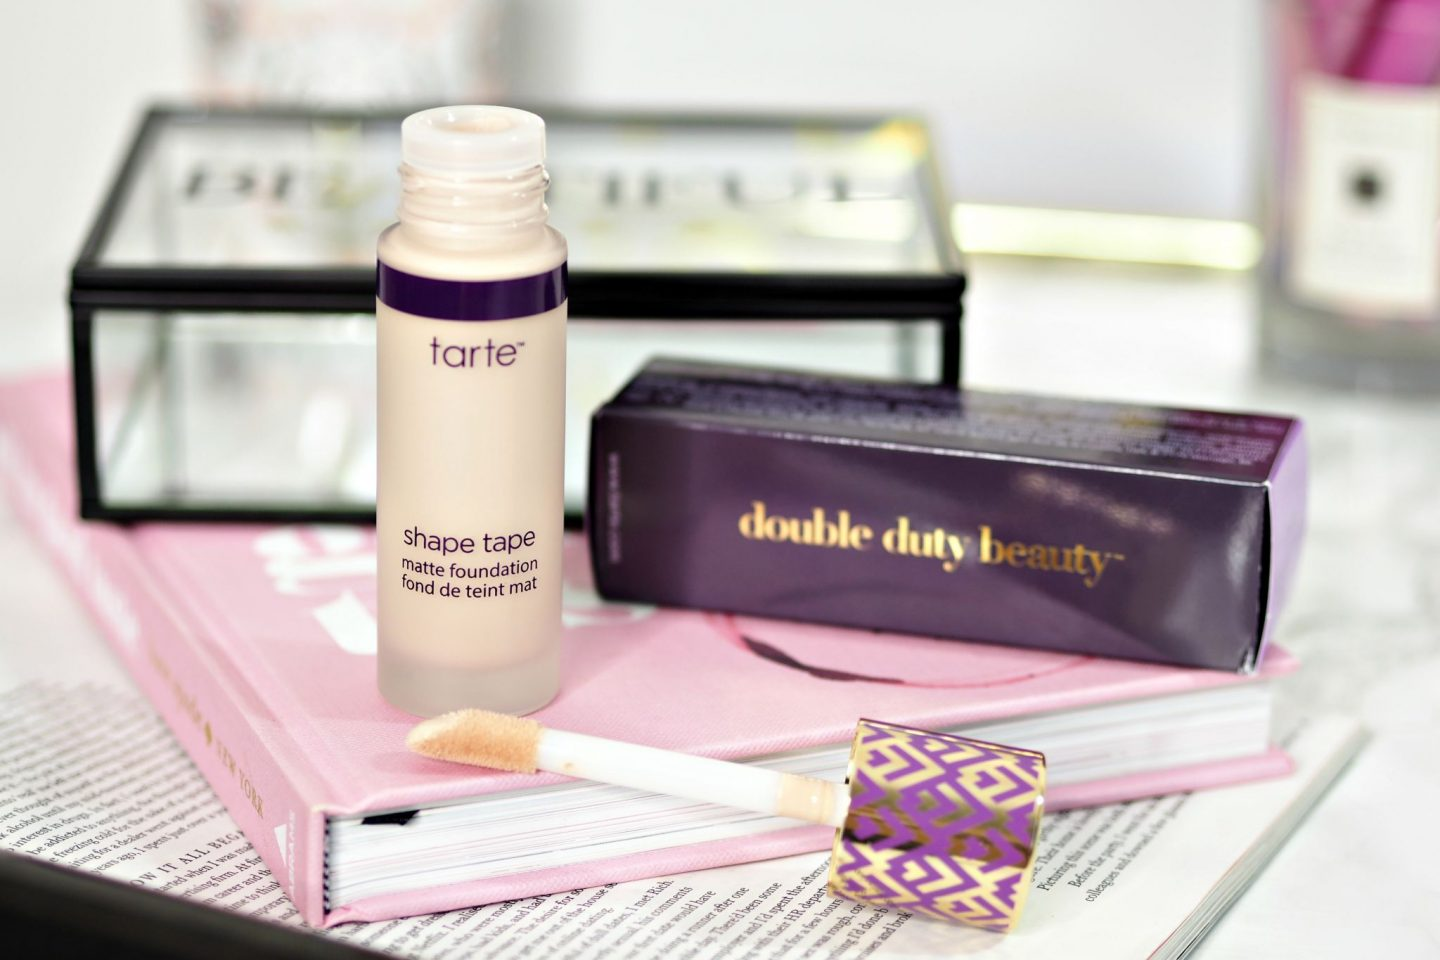 Tarte Shape Tape Foundation review and swatches